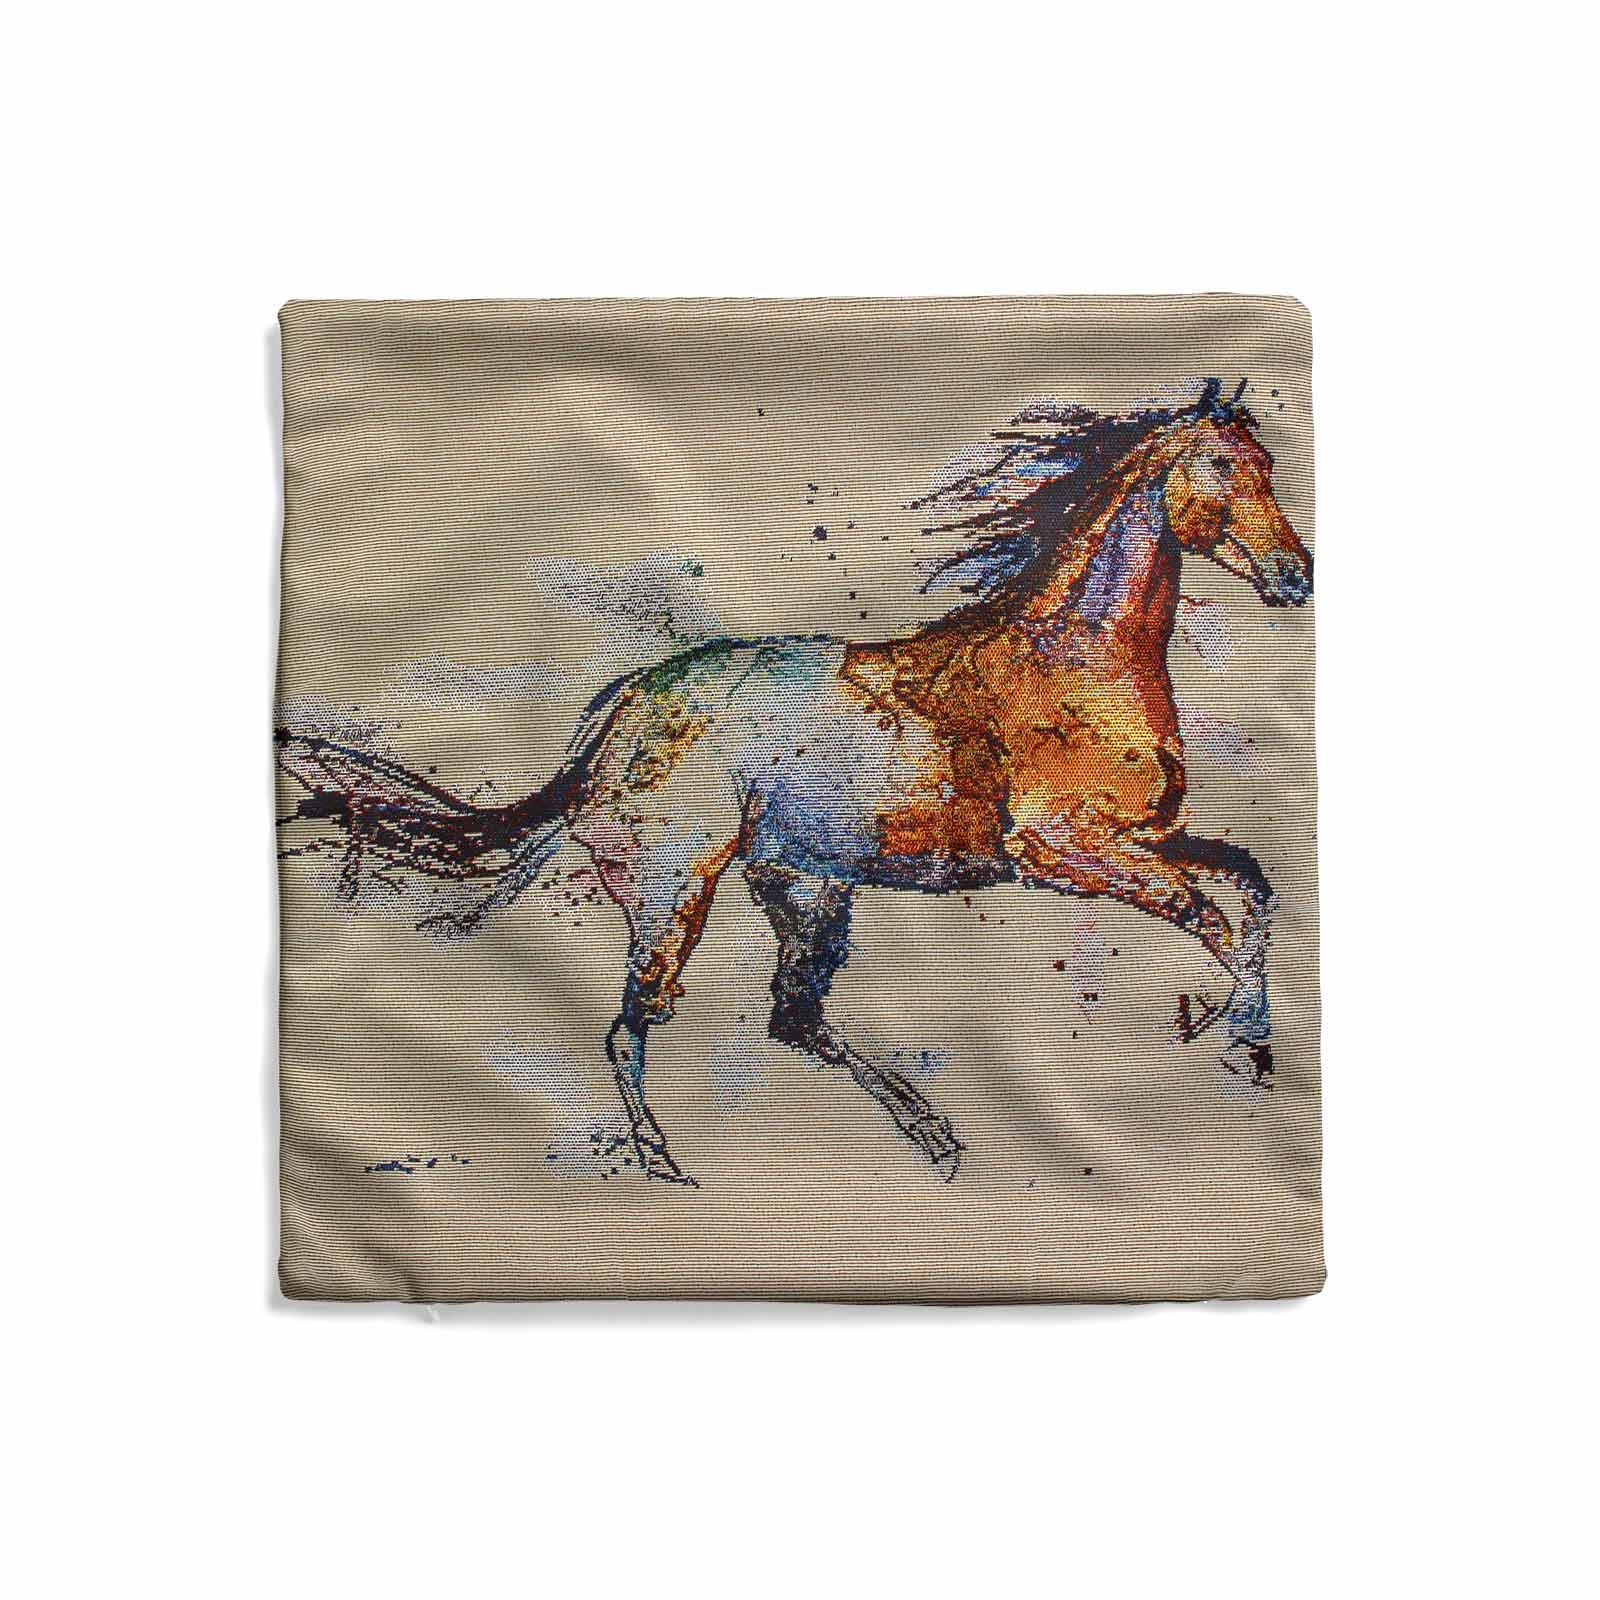 Tapestry-Cushion-Covers-Vintage-Pillow-Cover-Collection-18-034-45cm-Filled-Cushions thumbnail 73